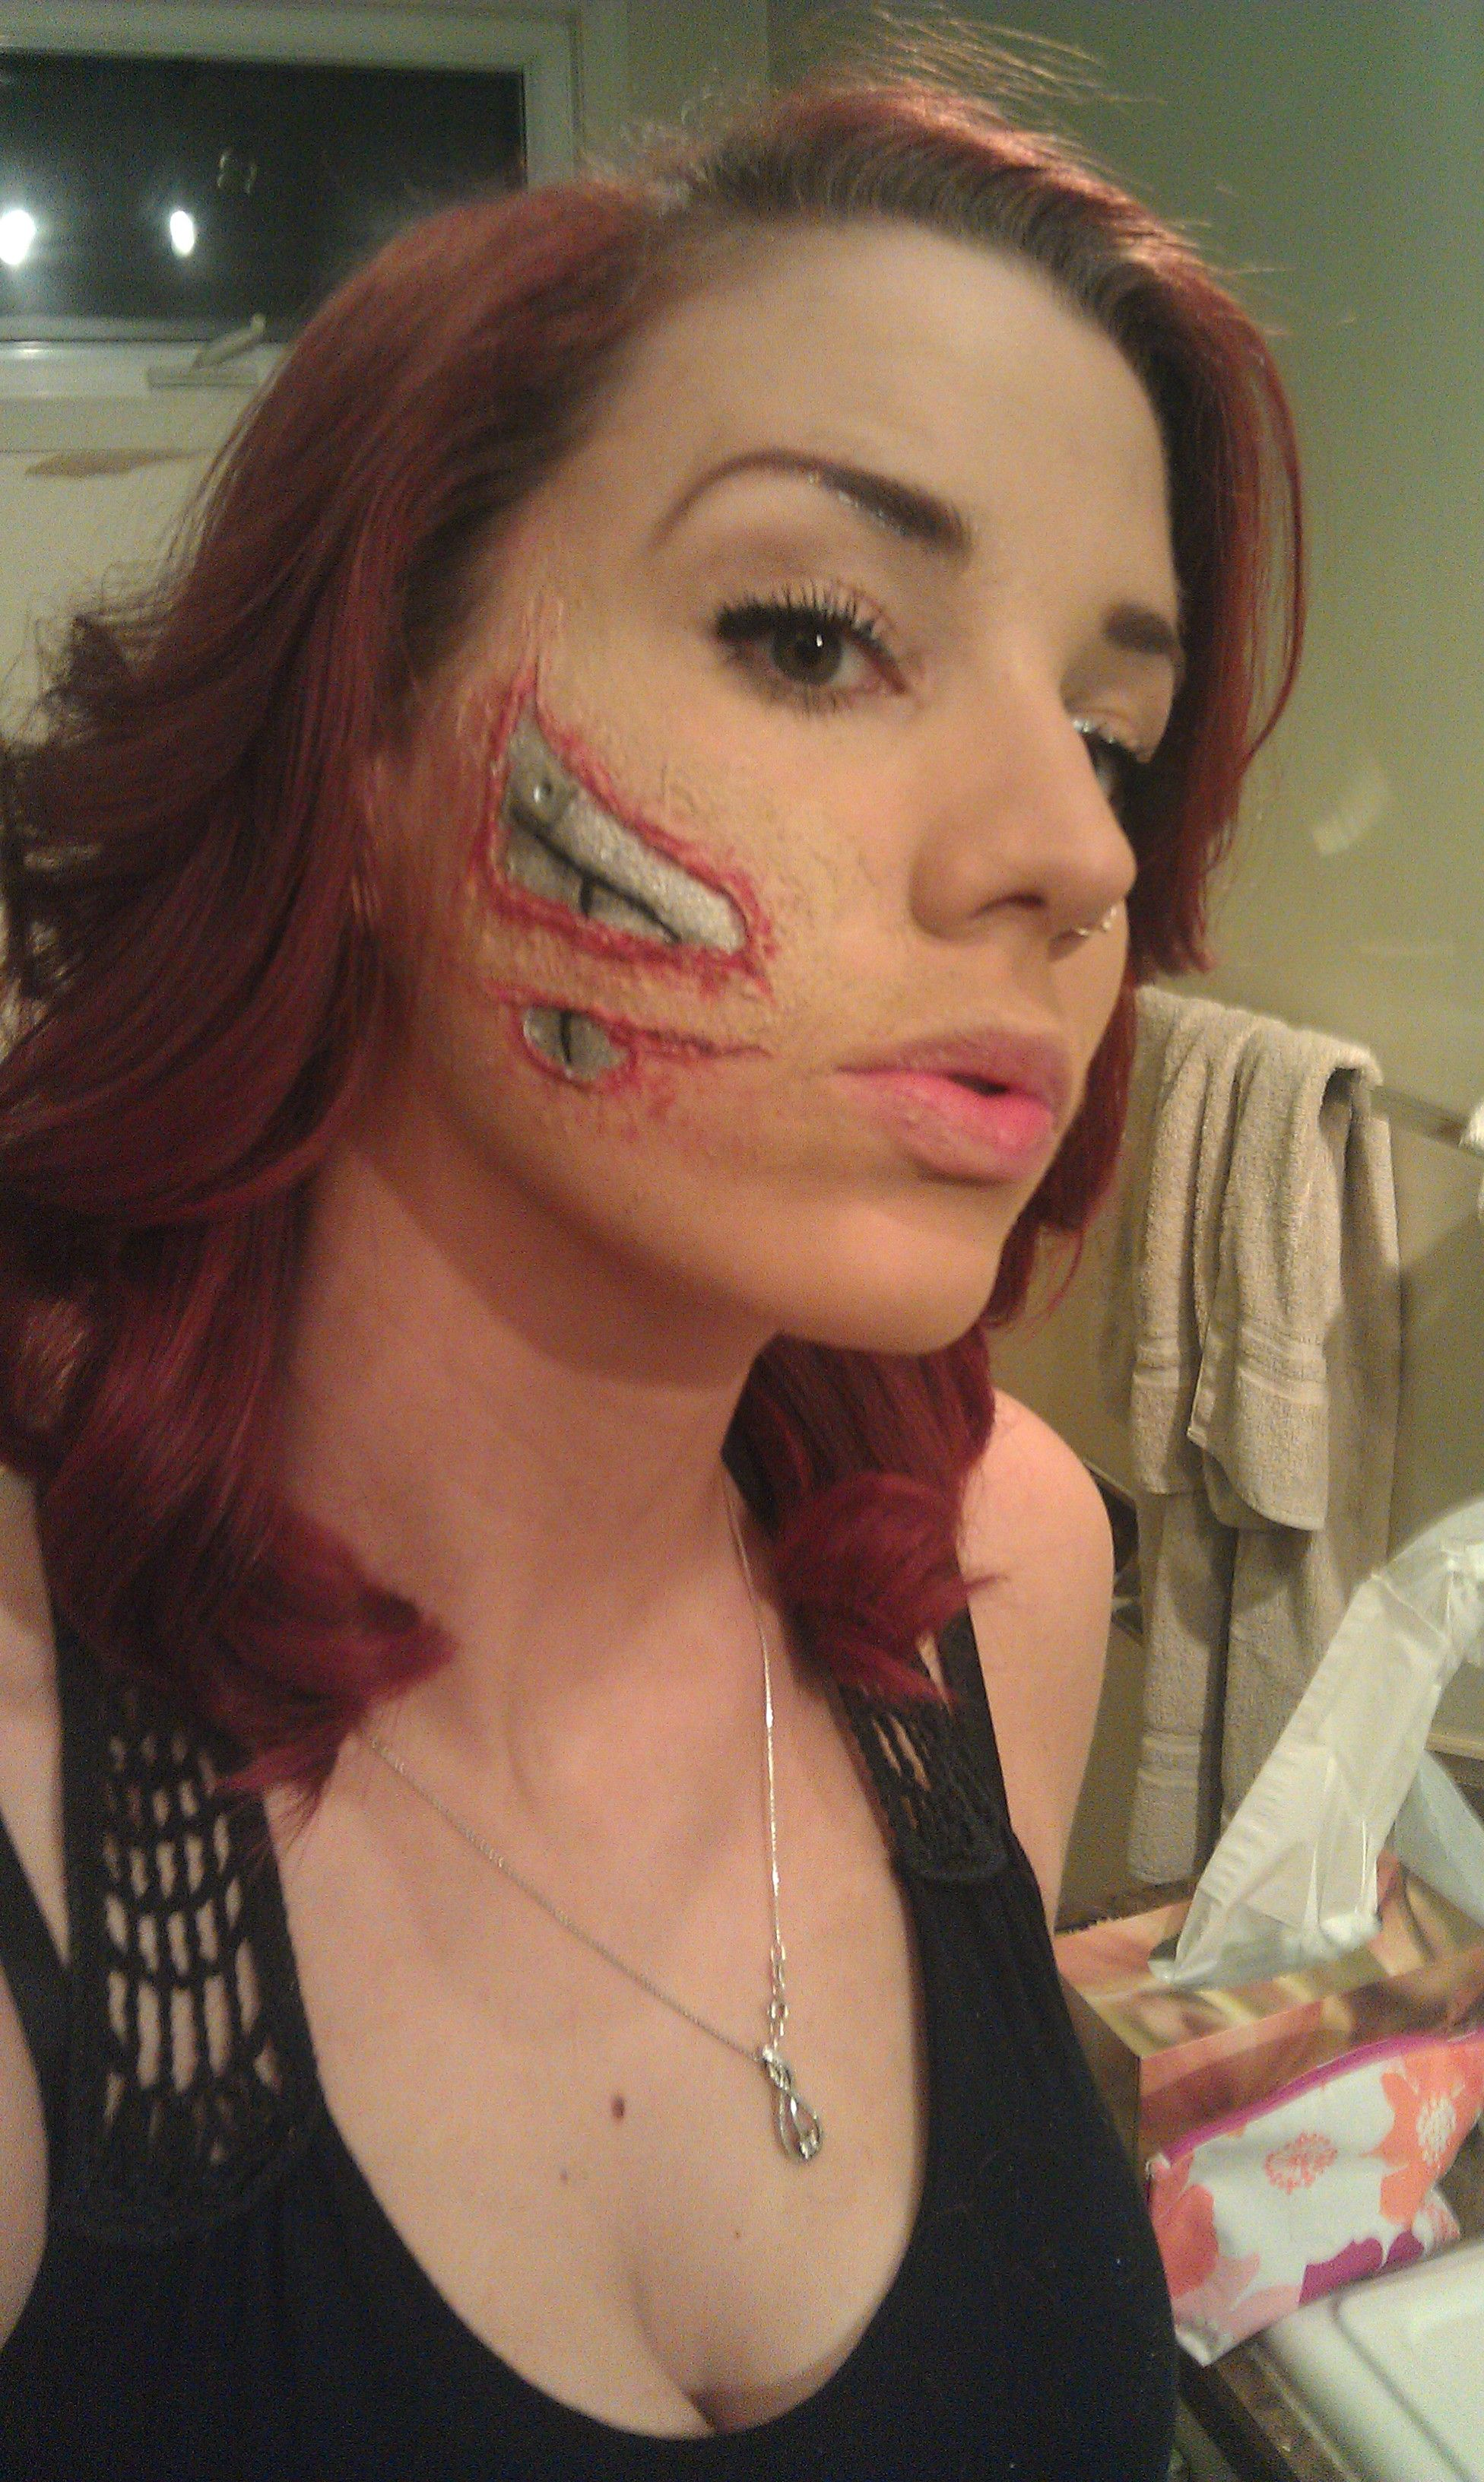 Cyborg Halloween costume part 3 | costume | Pinterest | Costumi di ...